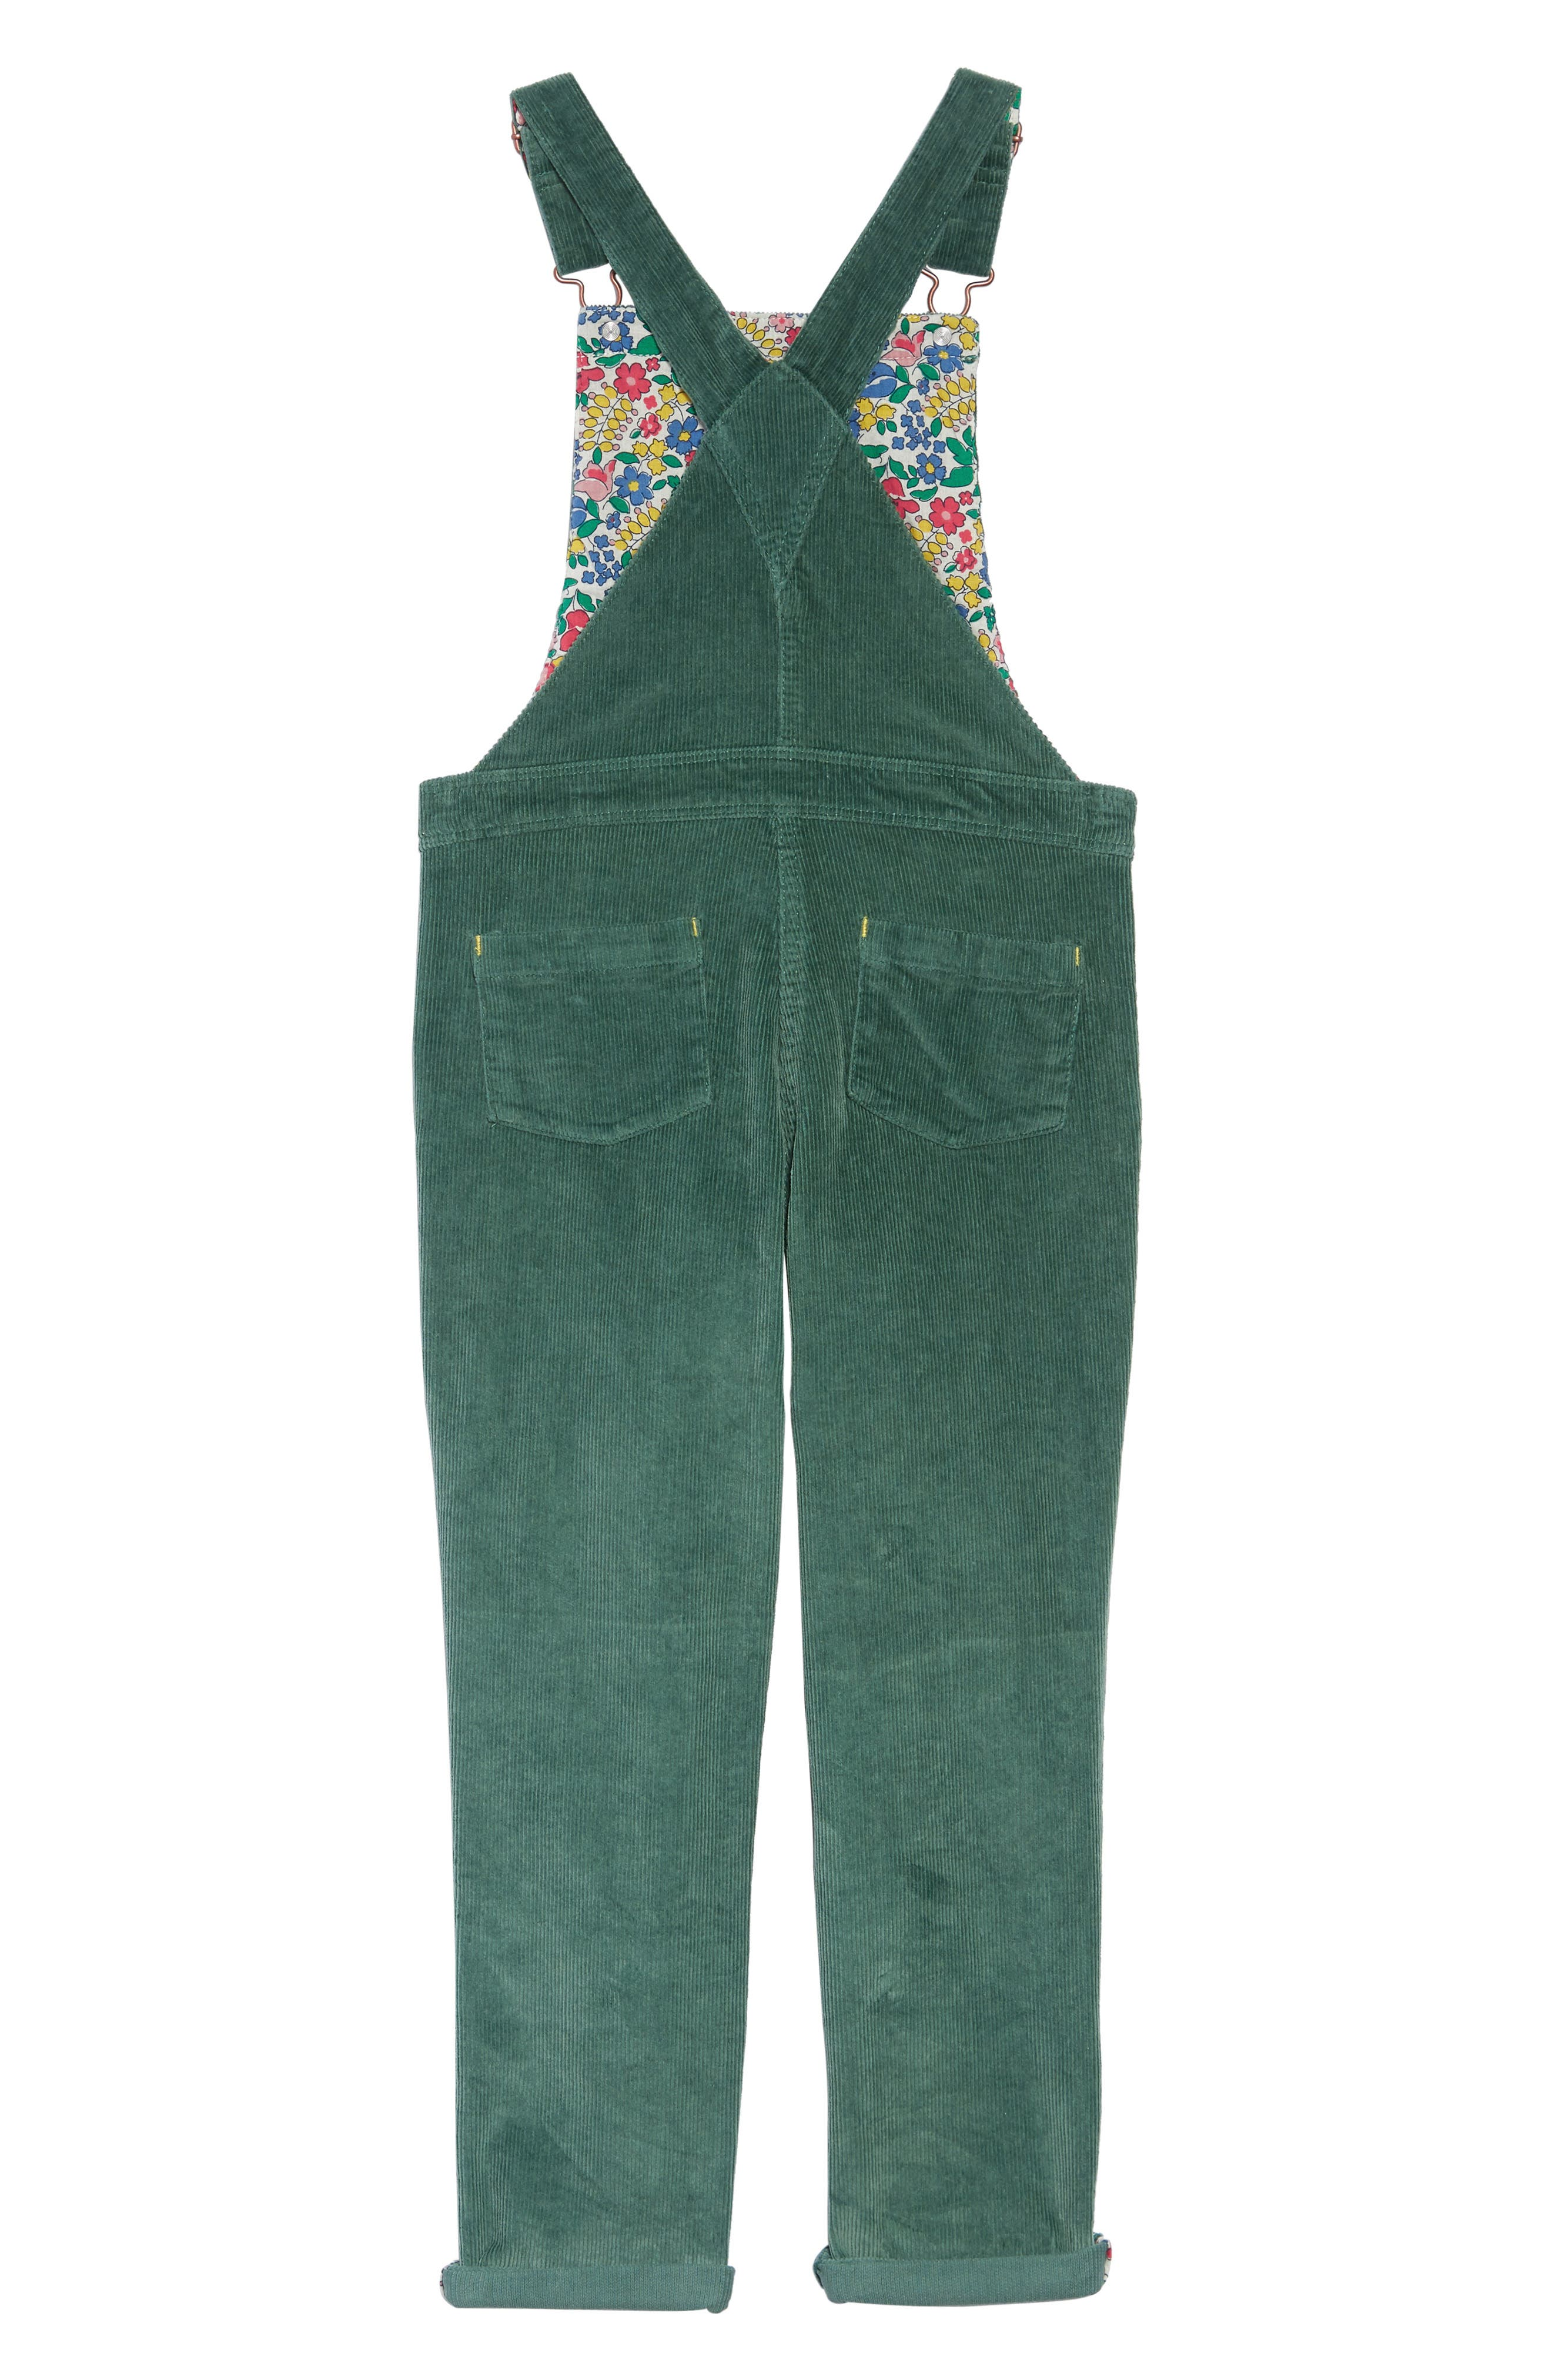 Embroidered Dungaree Overalls,                             Alternate thumbnail 2, color,                             315